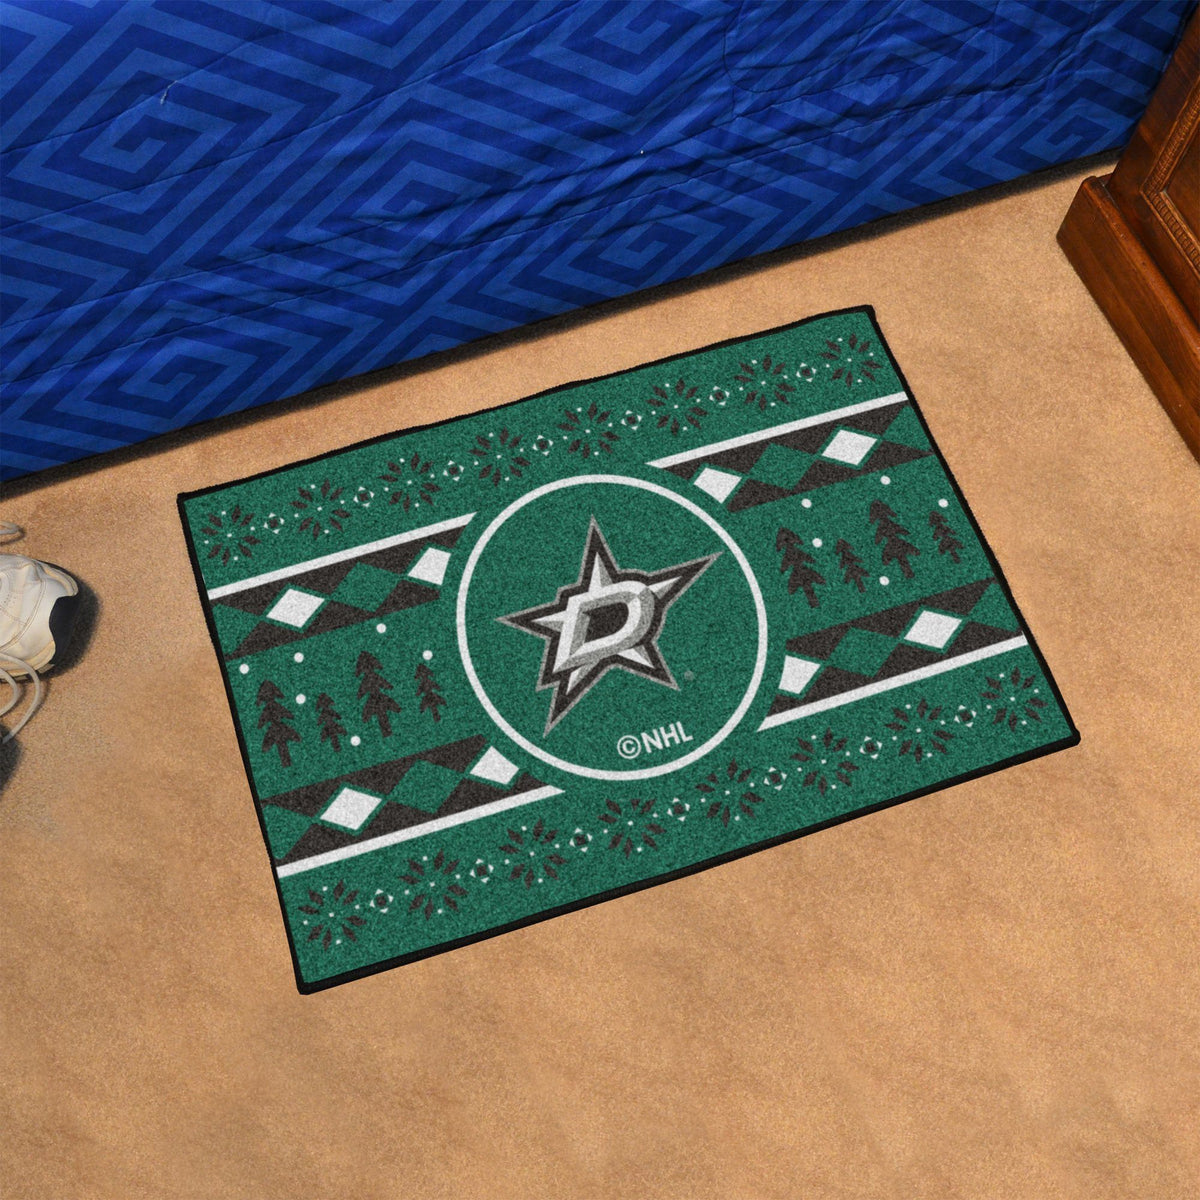 NHL - Holiday Sweater Starter Mat NHL Mats, Rectangular Mats, Holiday Sweater Starter Mat, NHL, Home Fan Mats Dallas Stars